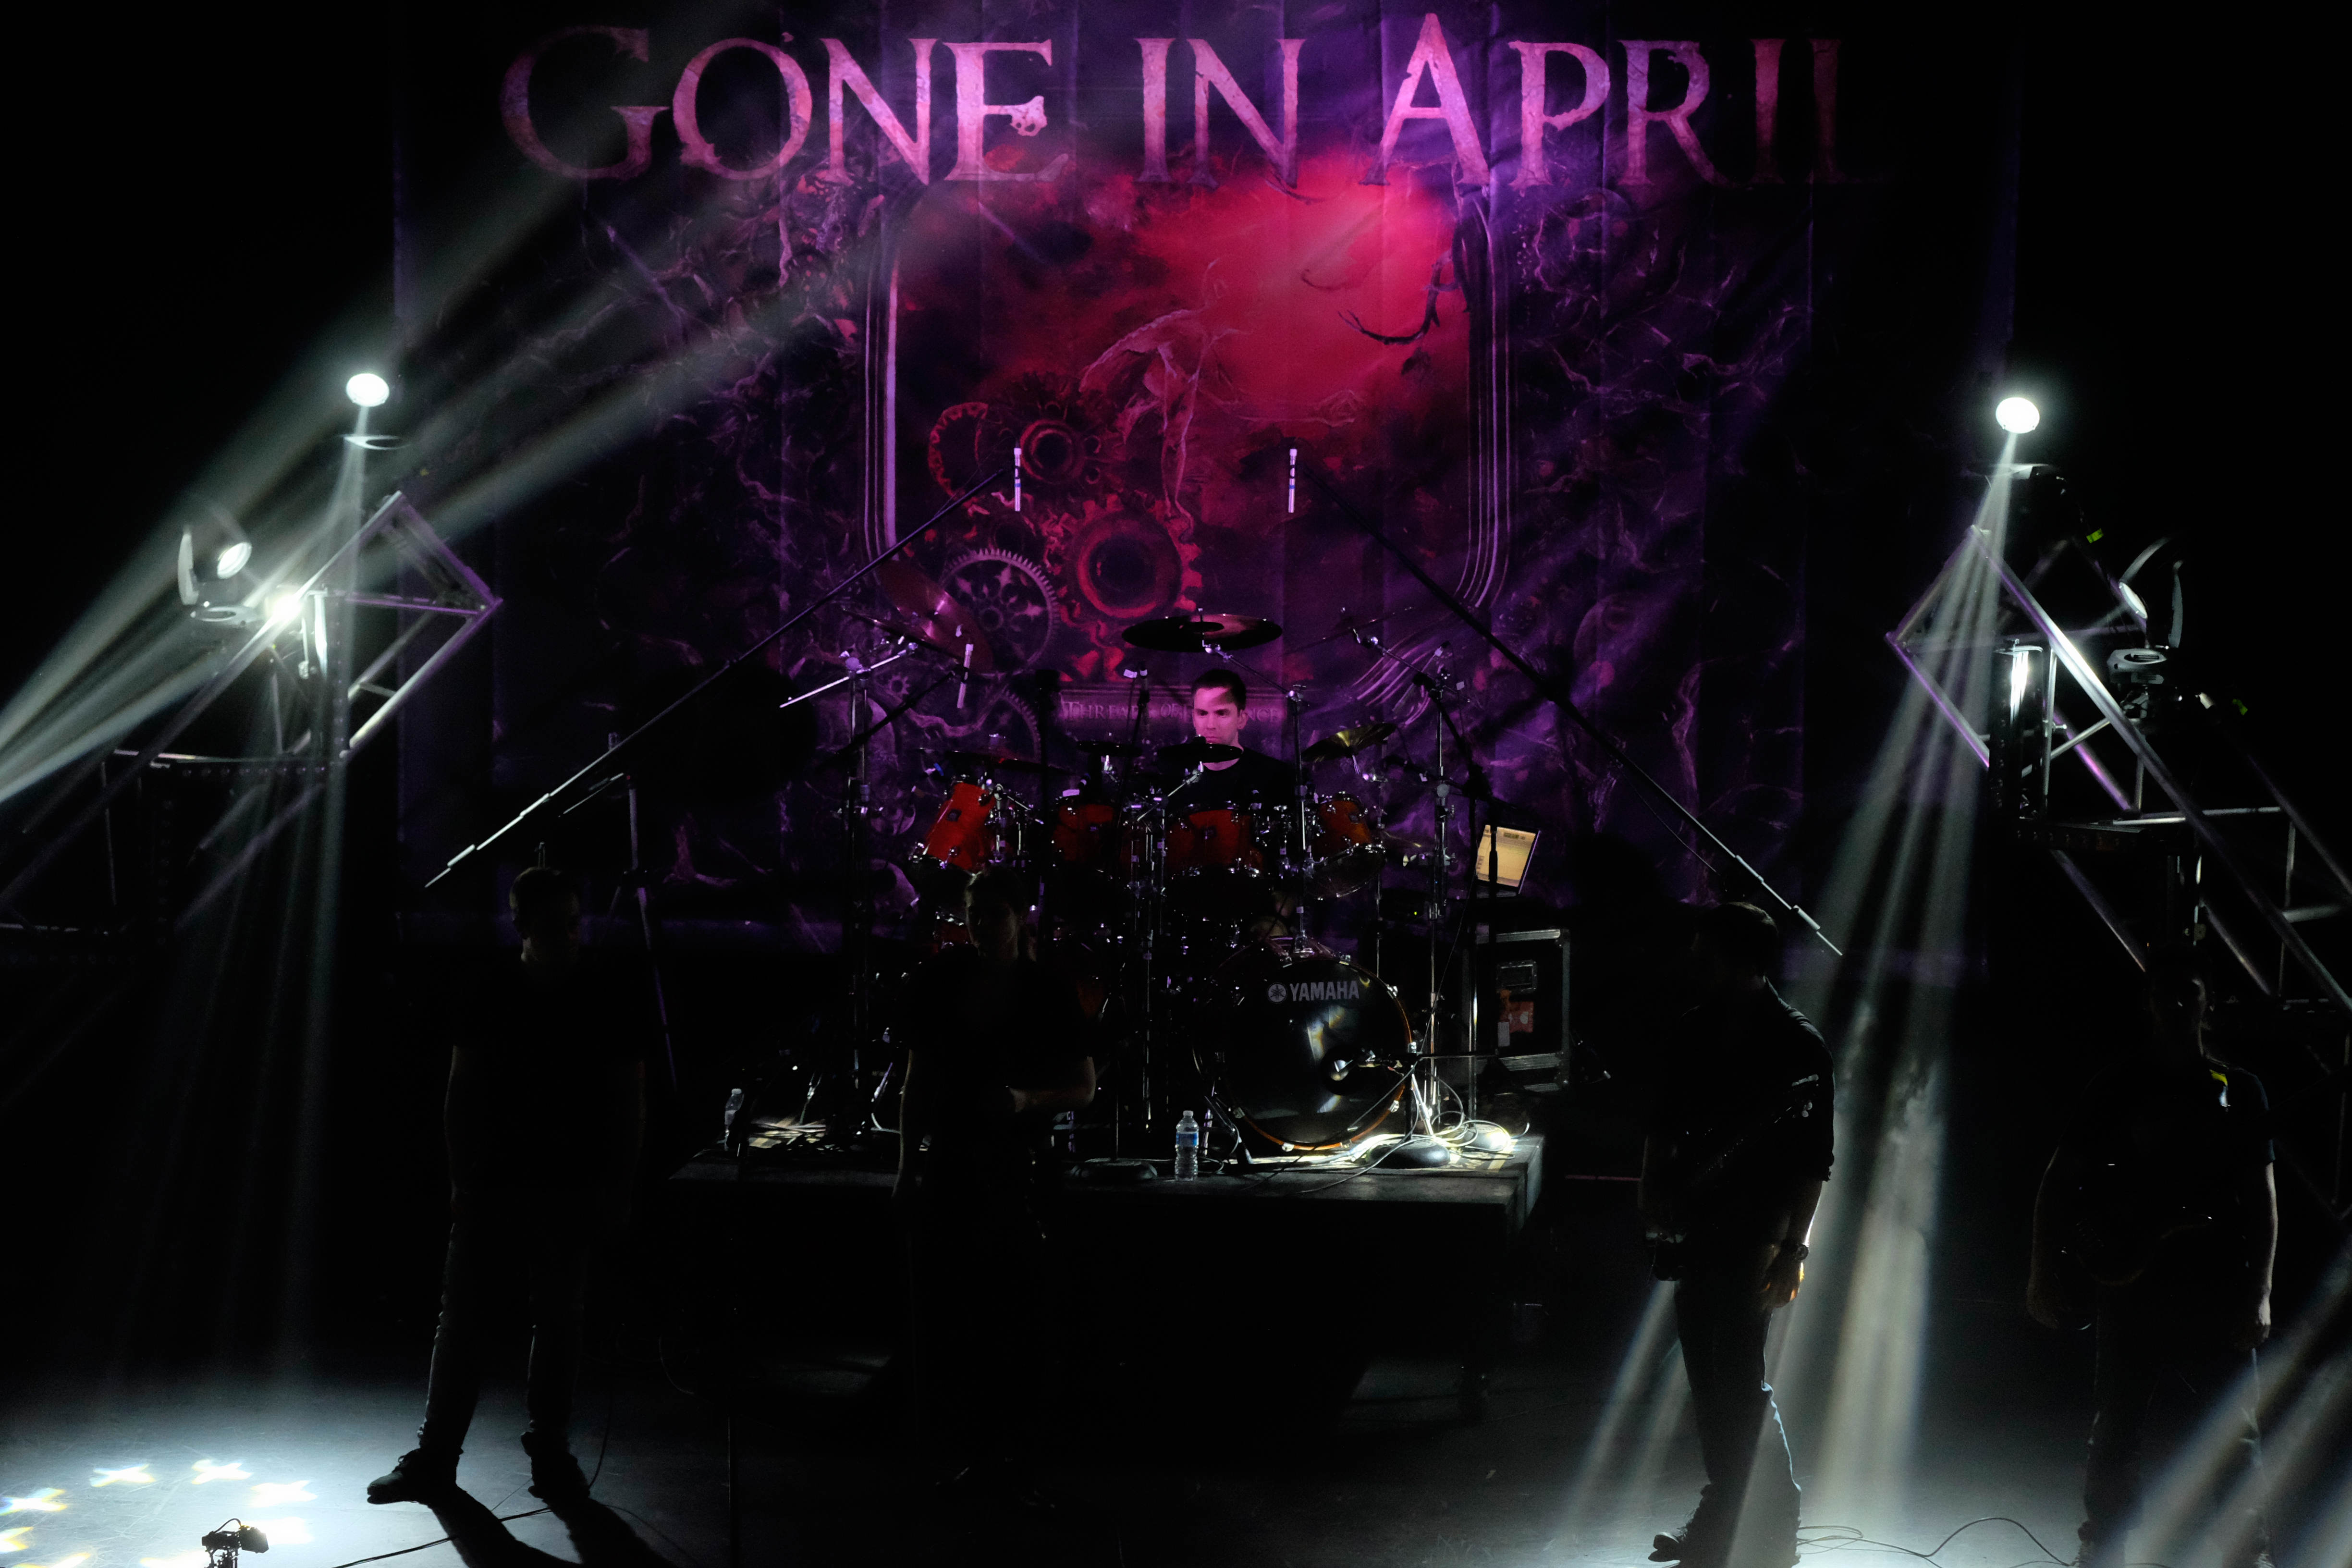 Gone in April band lineup